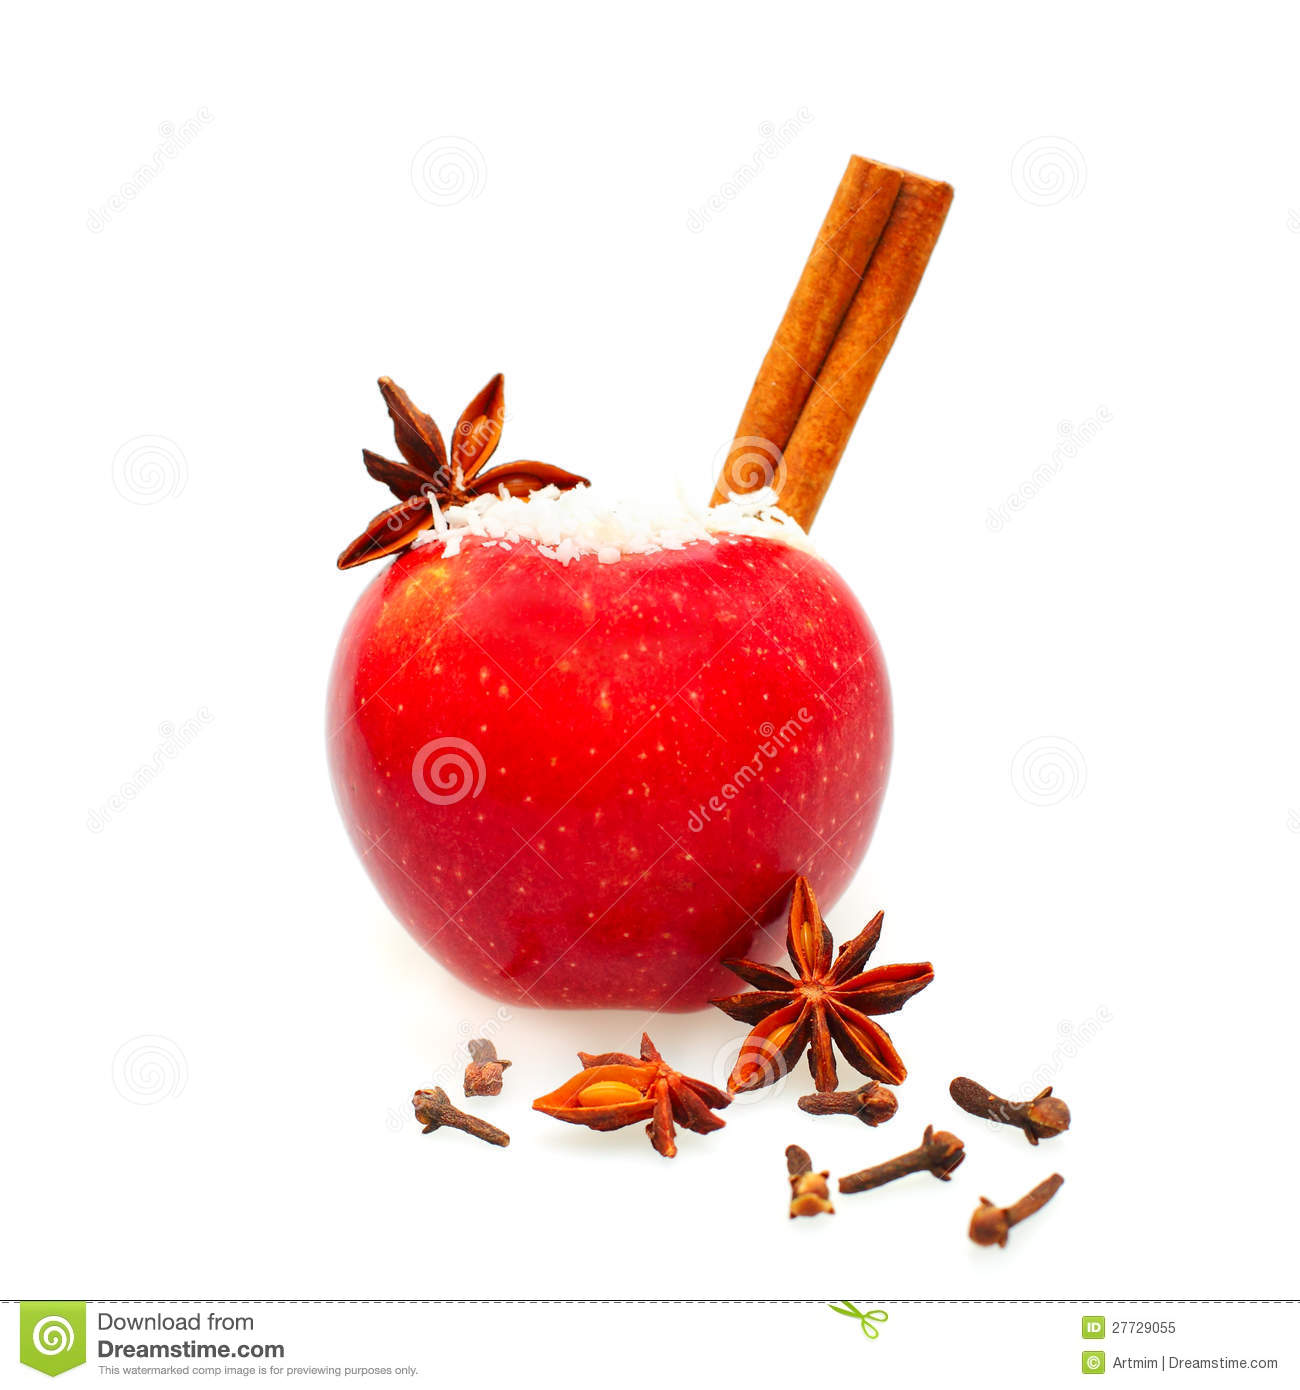 Christmas food decor red apple royalty free stock photo for Apples for decoration